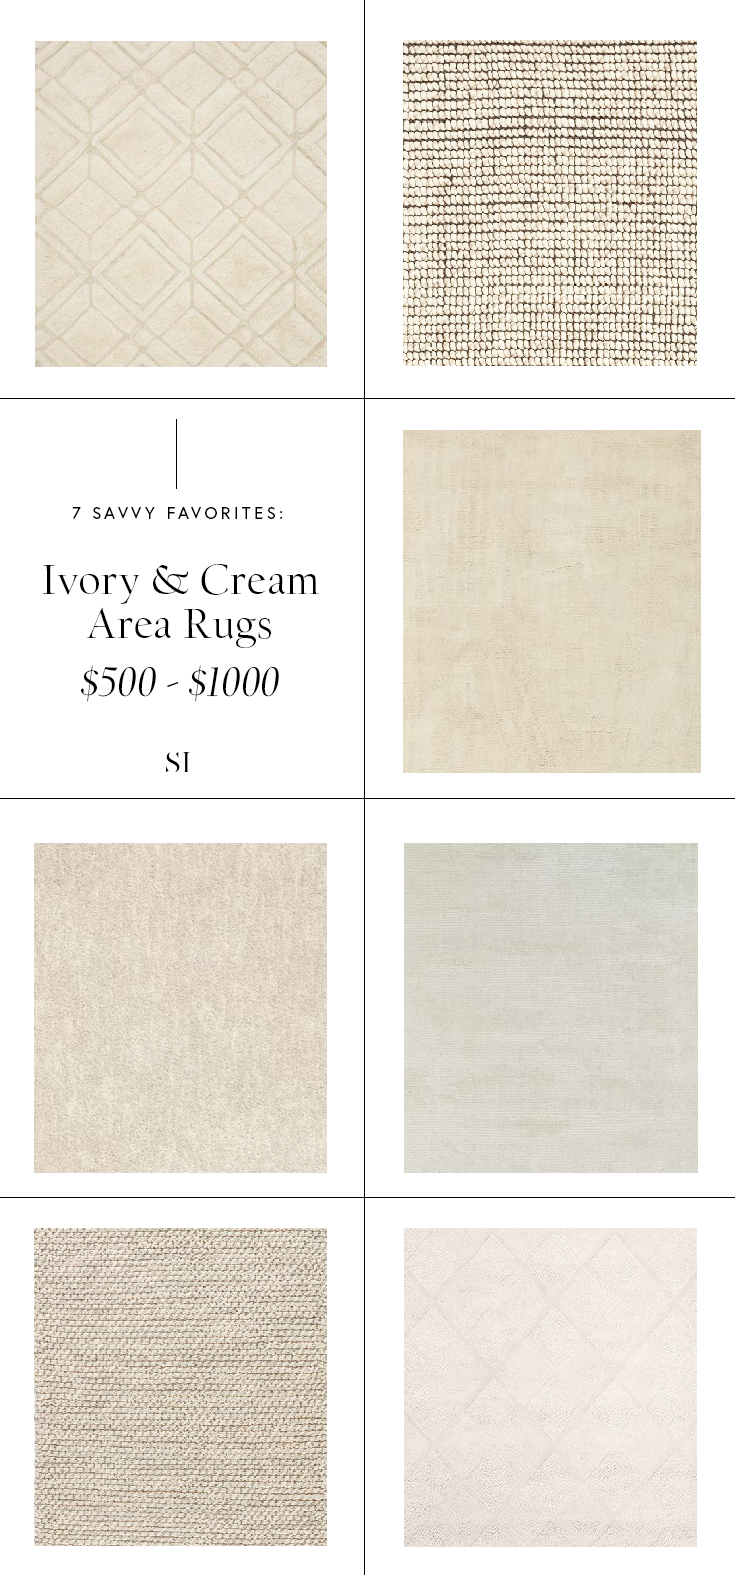 Minimal and textured ivory and off white area rugs for your living room from $500 to $1000.png